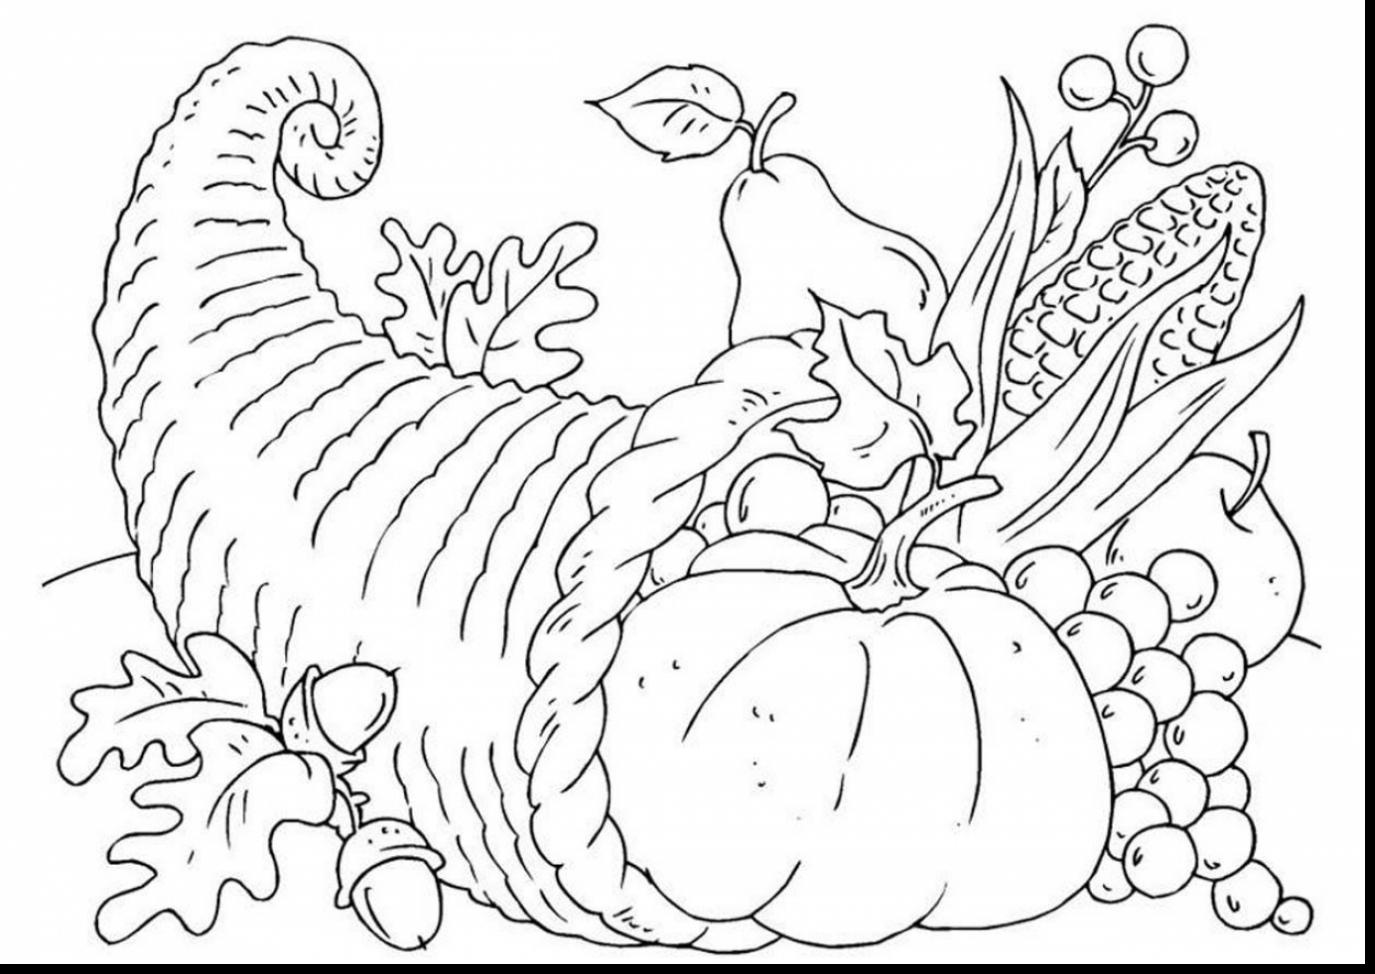 Thanksgiving Cornucopia Coloring Pages At Getdrawings Com Free For